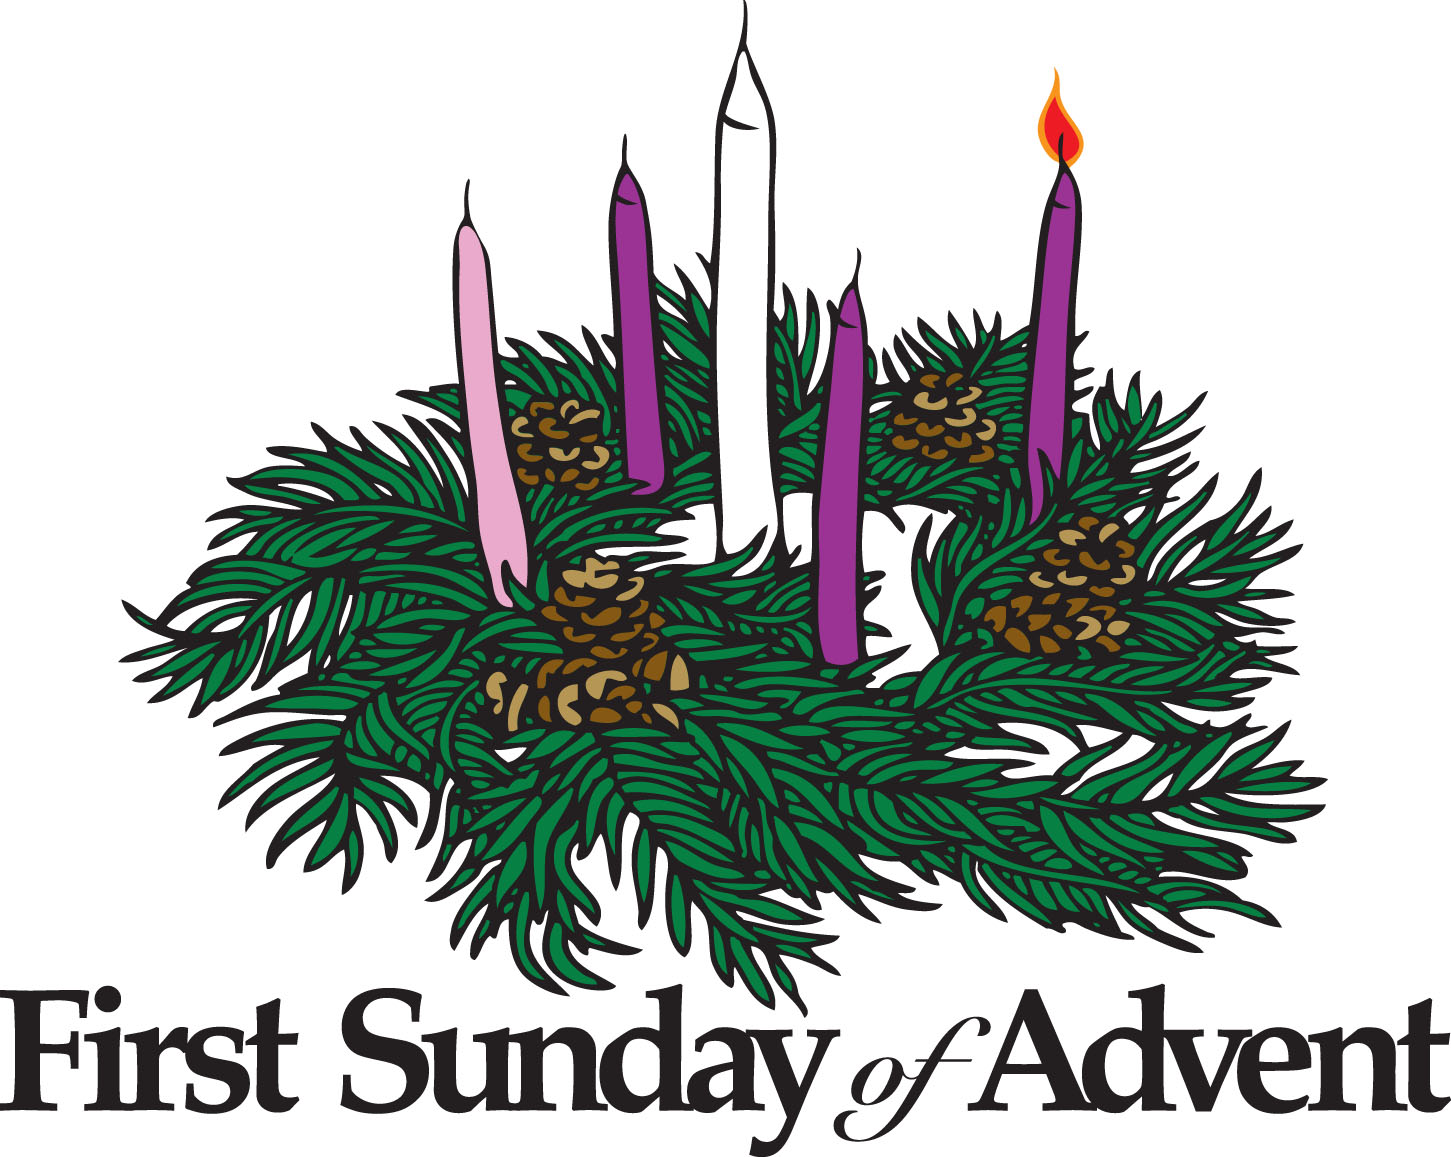 first-sunday-of-advent.jpg